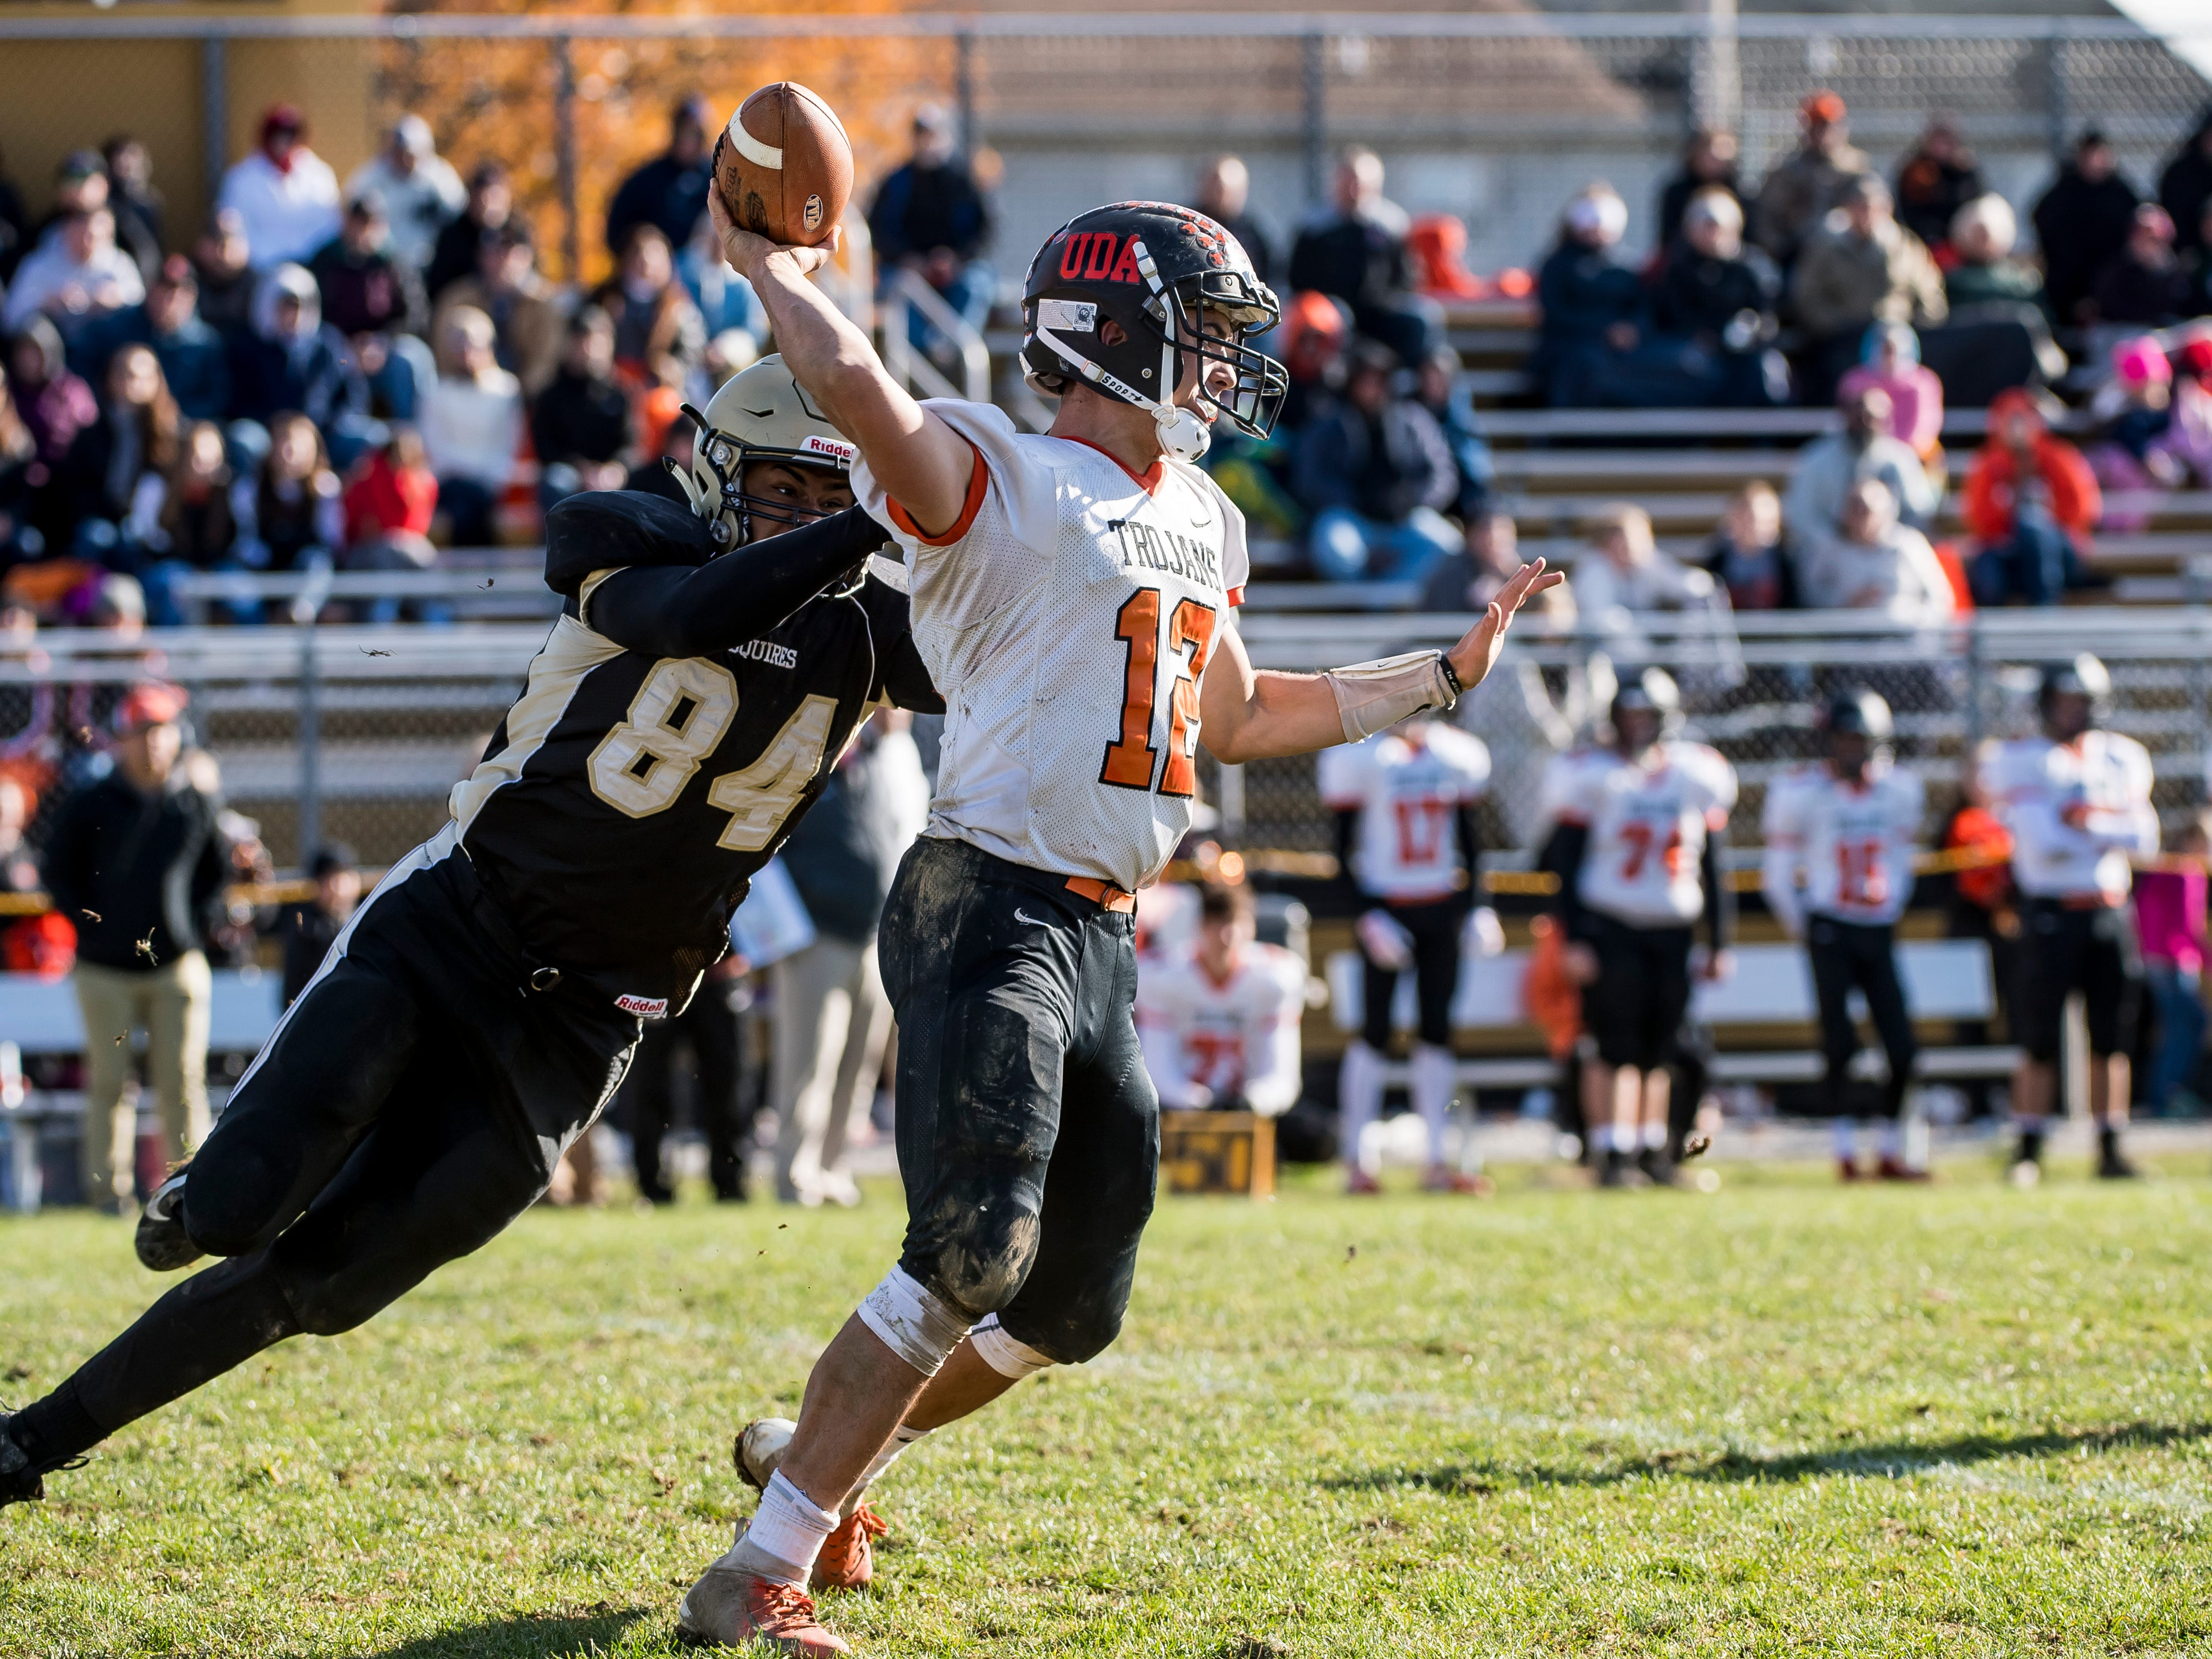 Delone Catholic's Marquis Suite (84) hits Macklin Ayers as he throws the ball during a District III Class 2A semifinal game on Saturday, November 3, 2018. The Squires won 48-23.